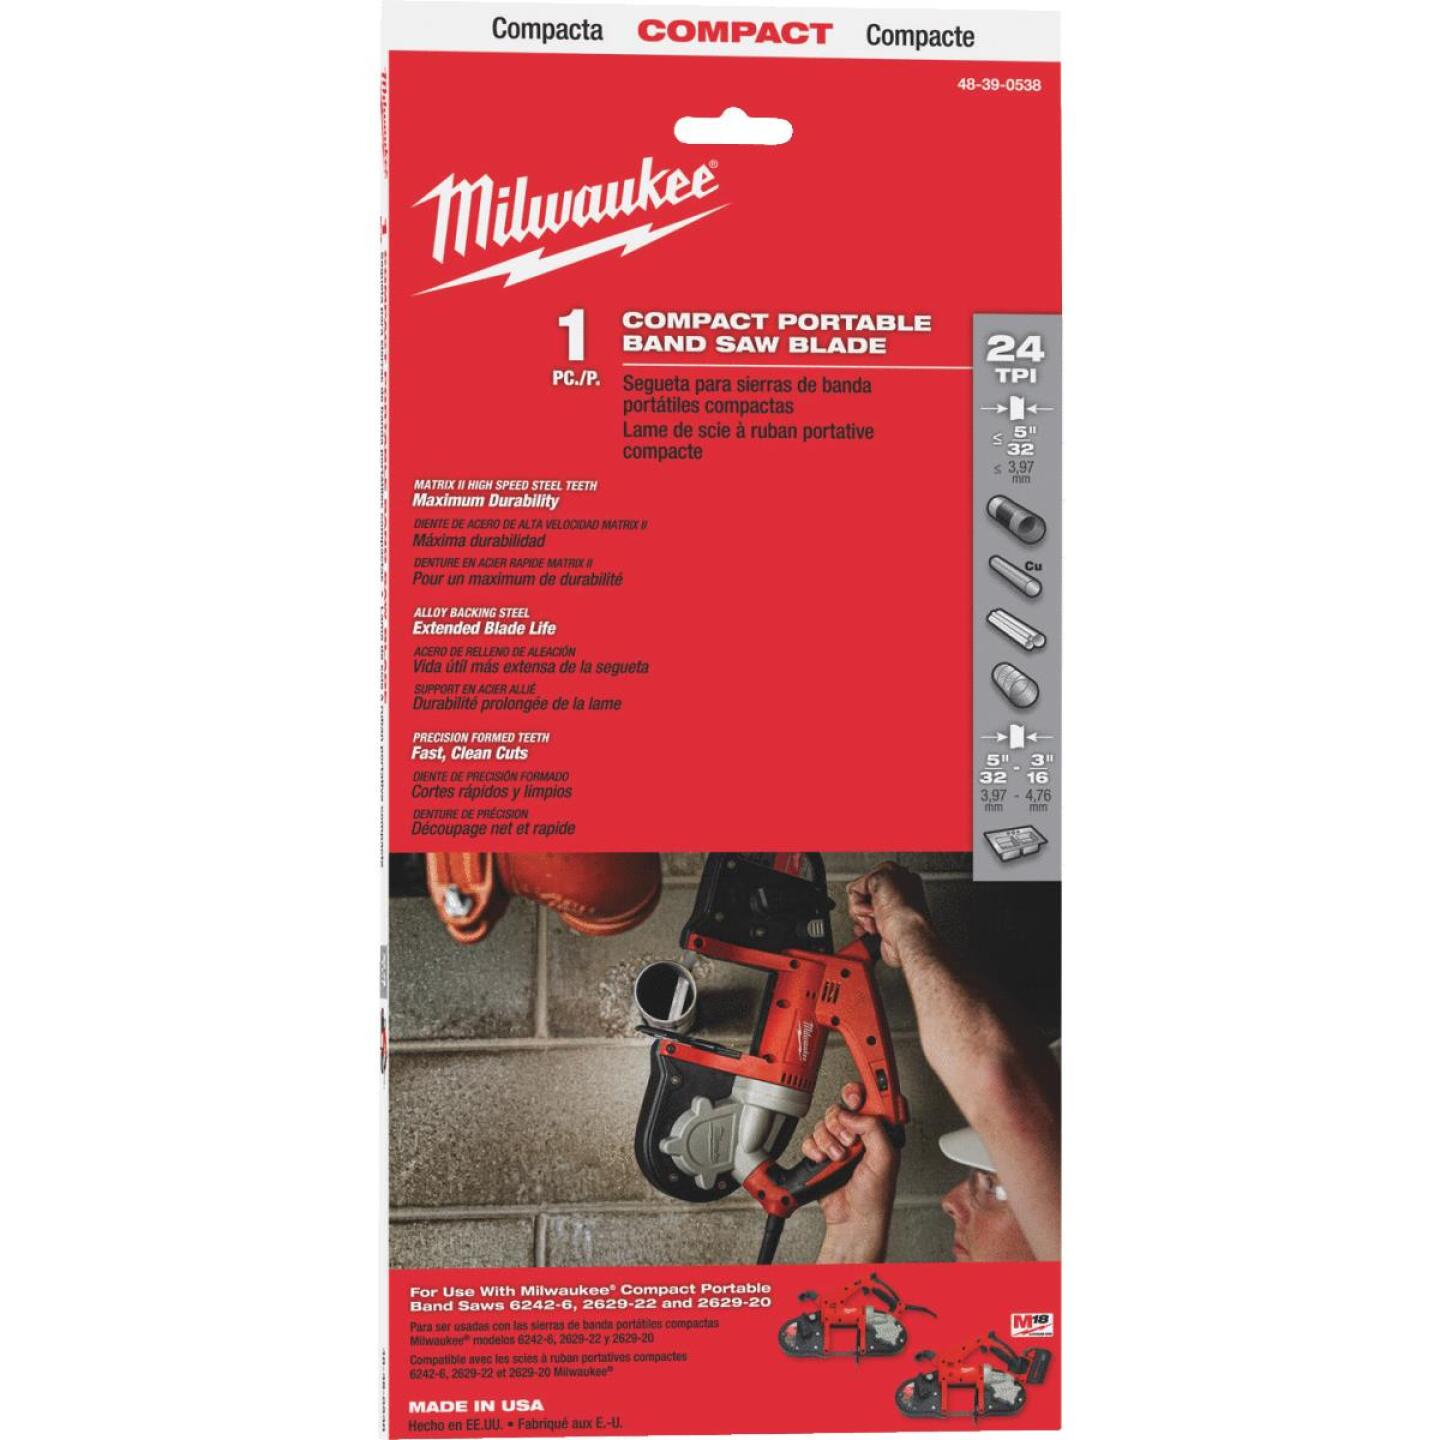 Milwaukee 35-3/8 In. x 1/2 In. 24 TPI Compact Band Saw Blade Image 1